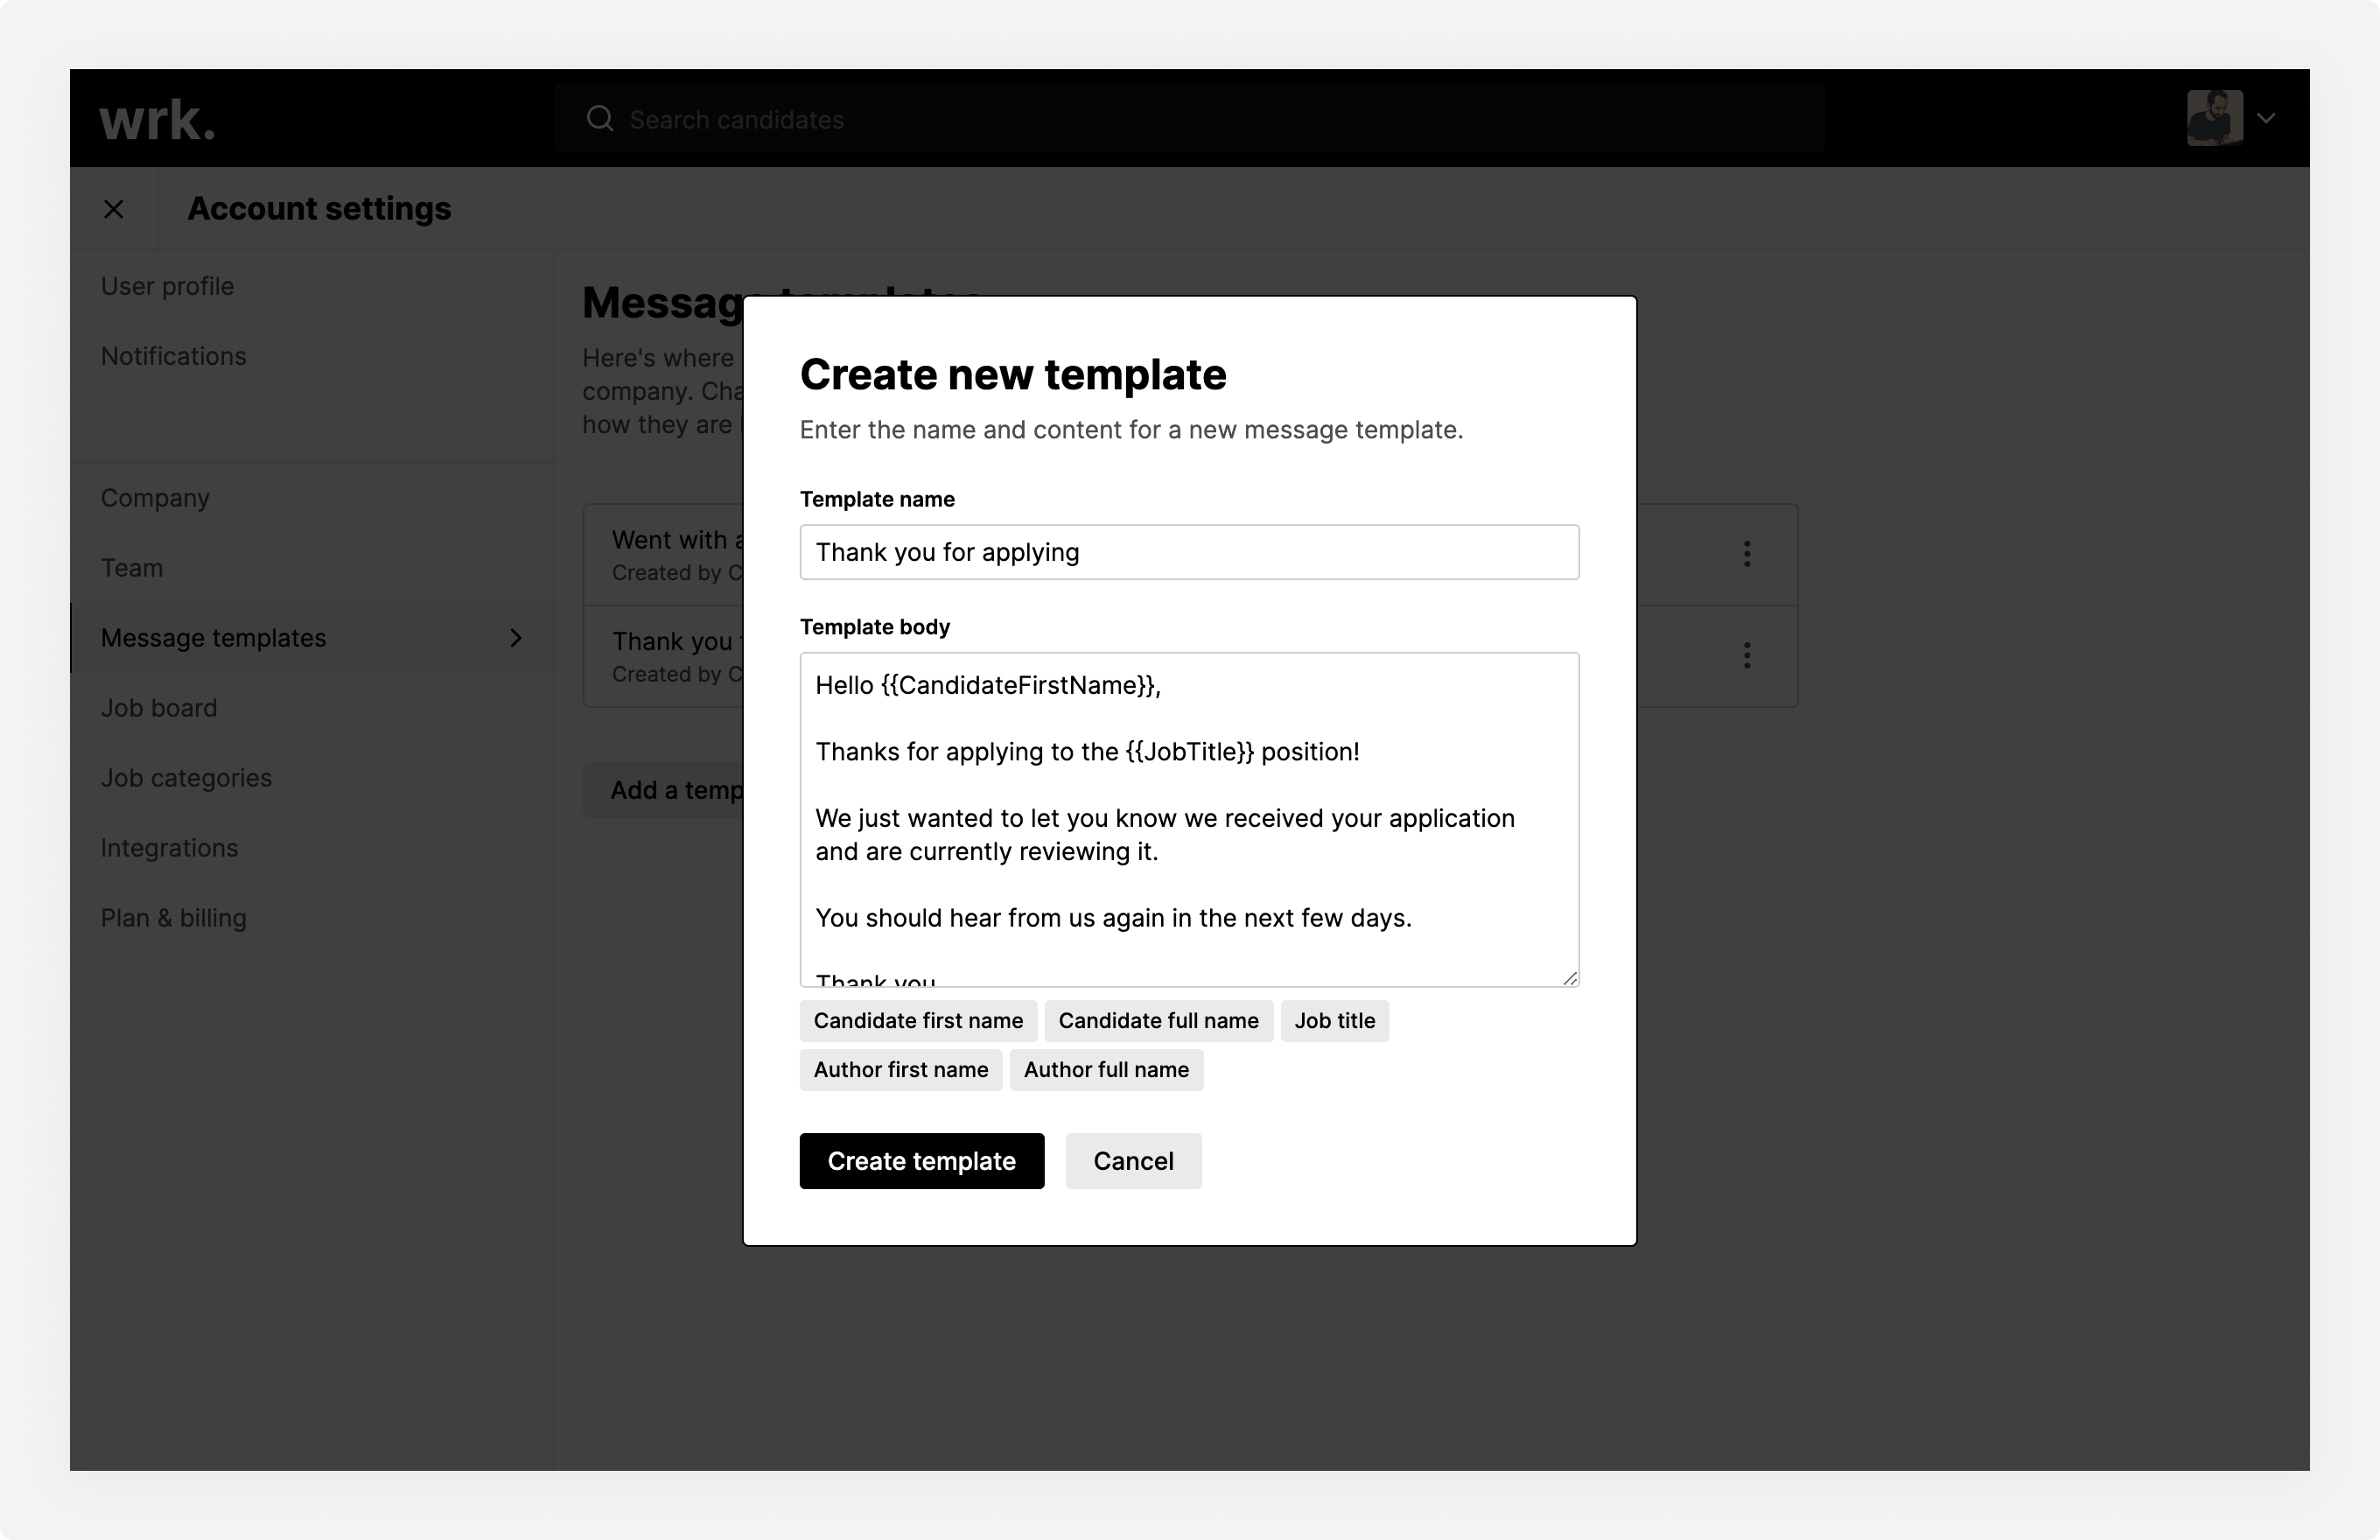 The create new template window in Wrk with template information filled out